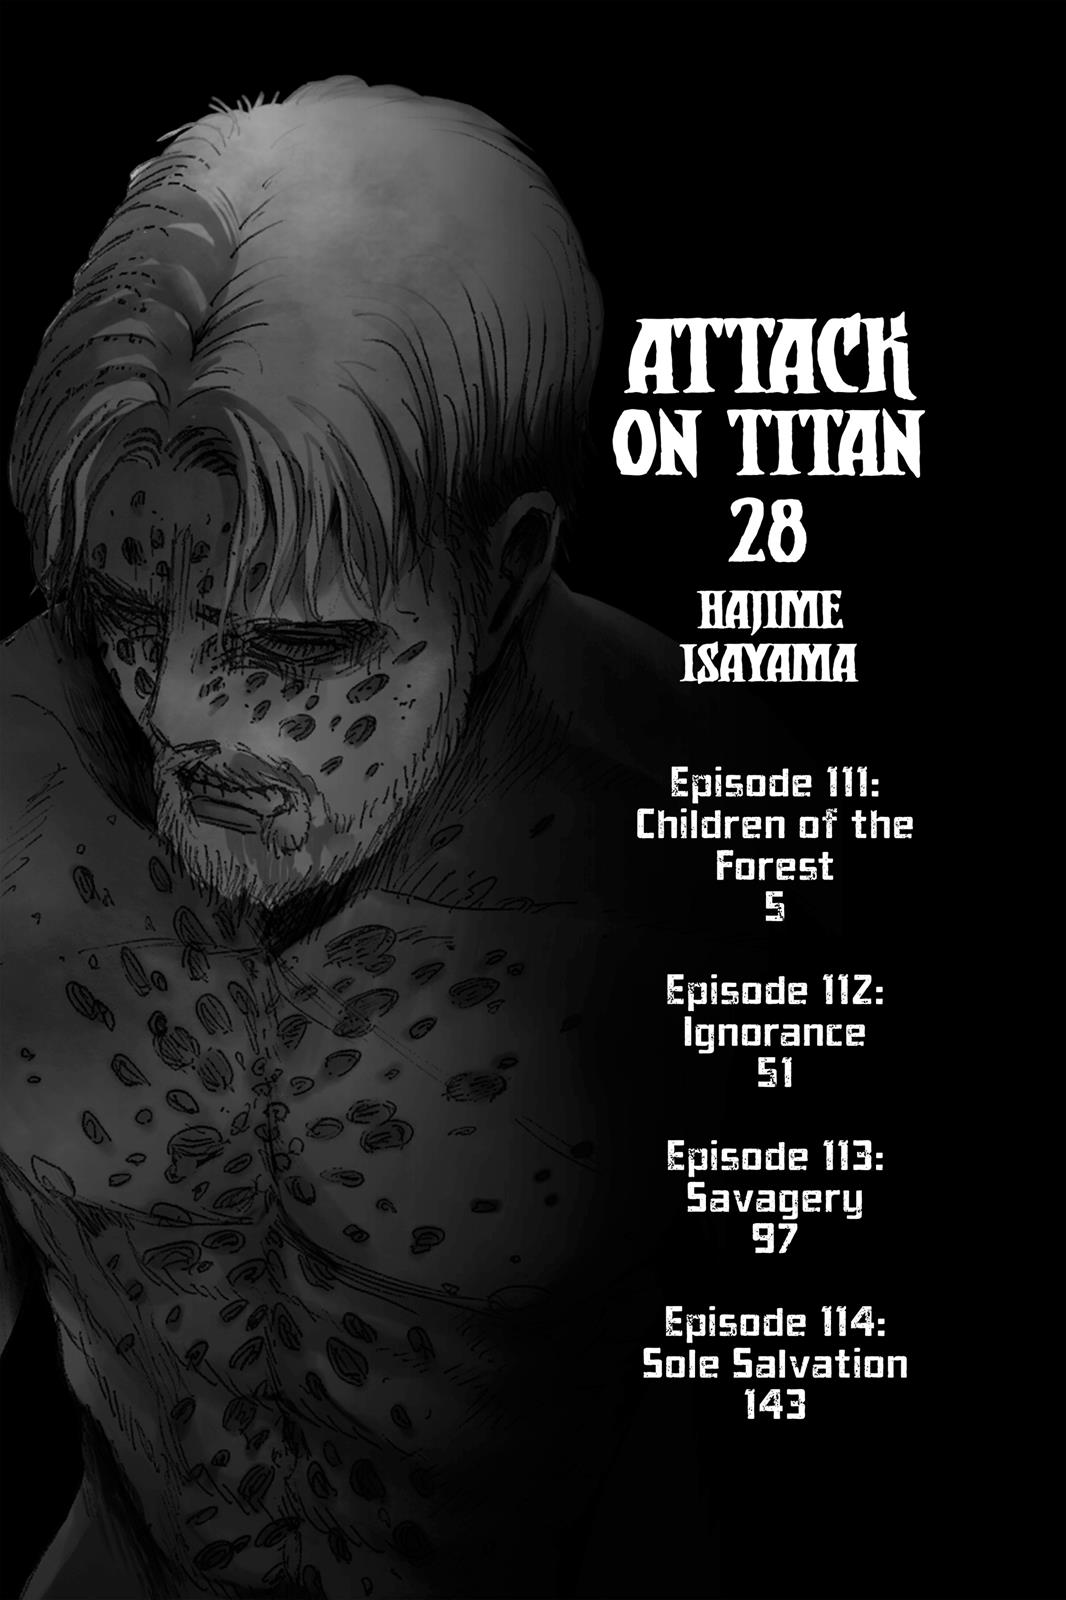 Attack On Titan, Episode 111 image 002